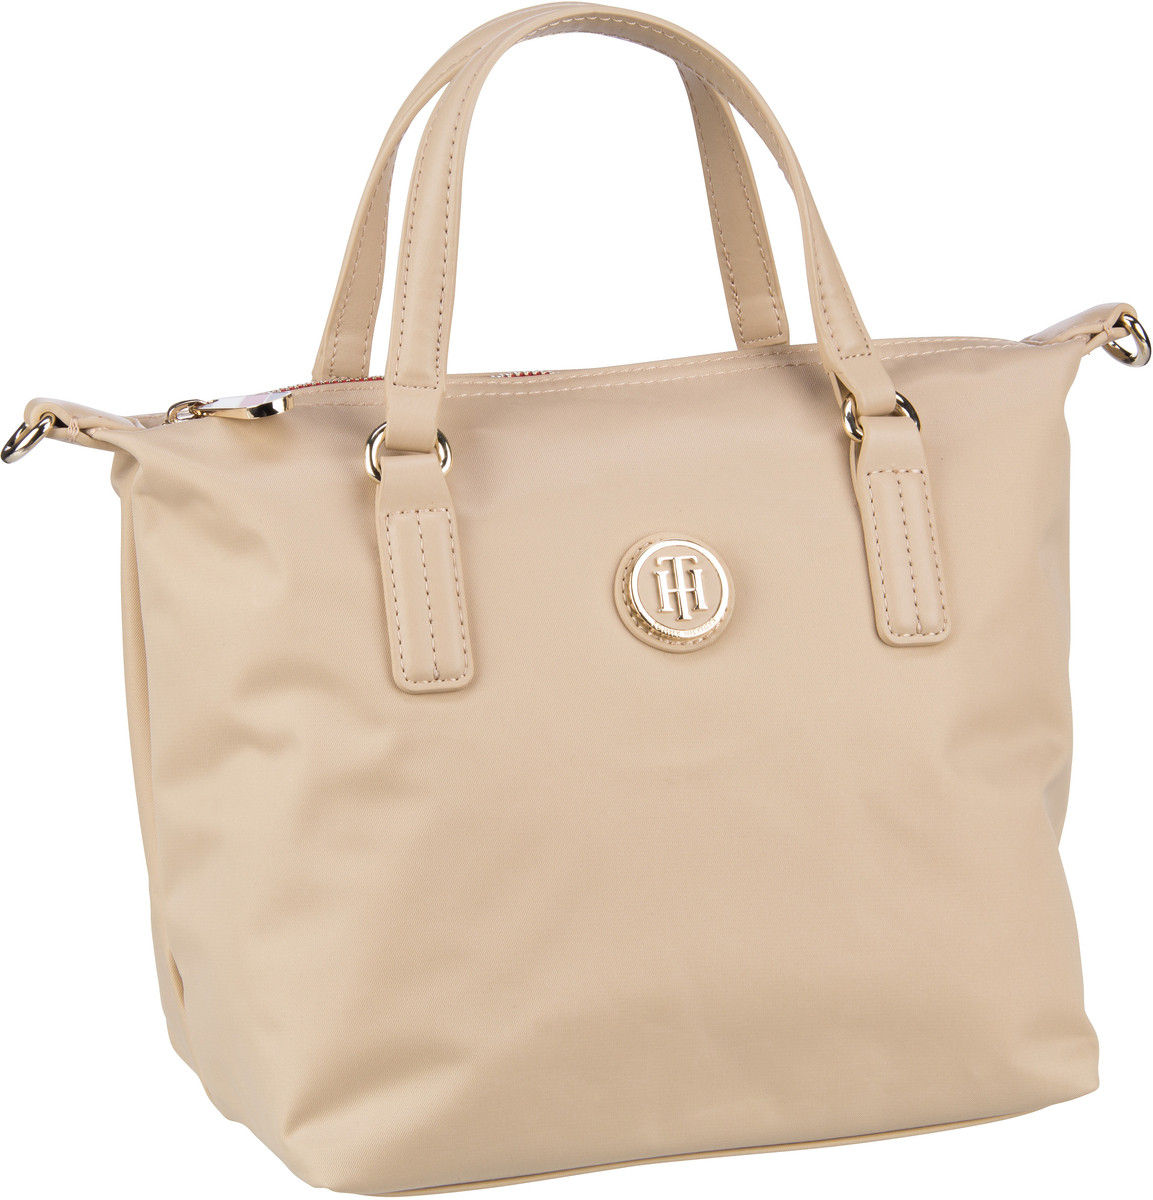 Handtasche Poppy Small Tote 6407 Warm Sand